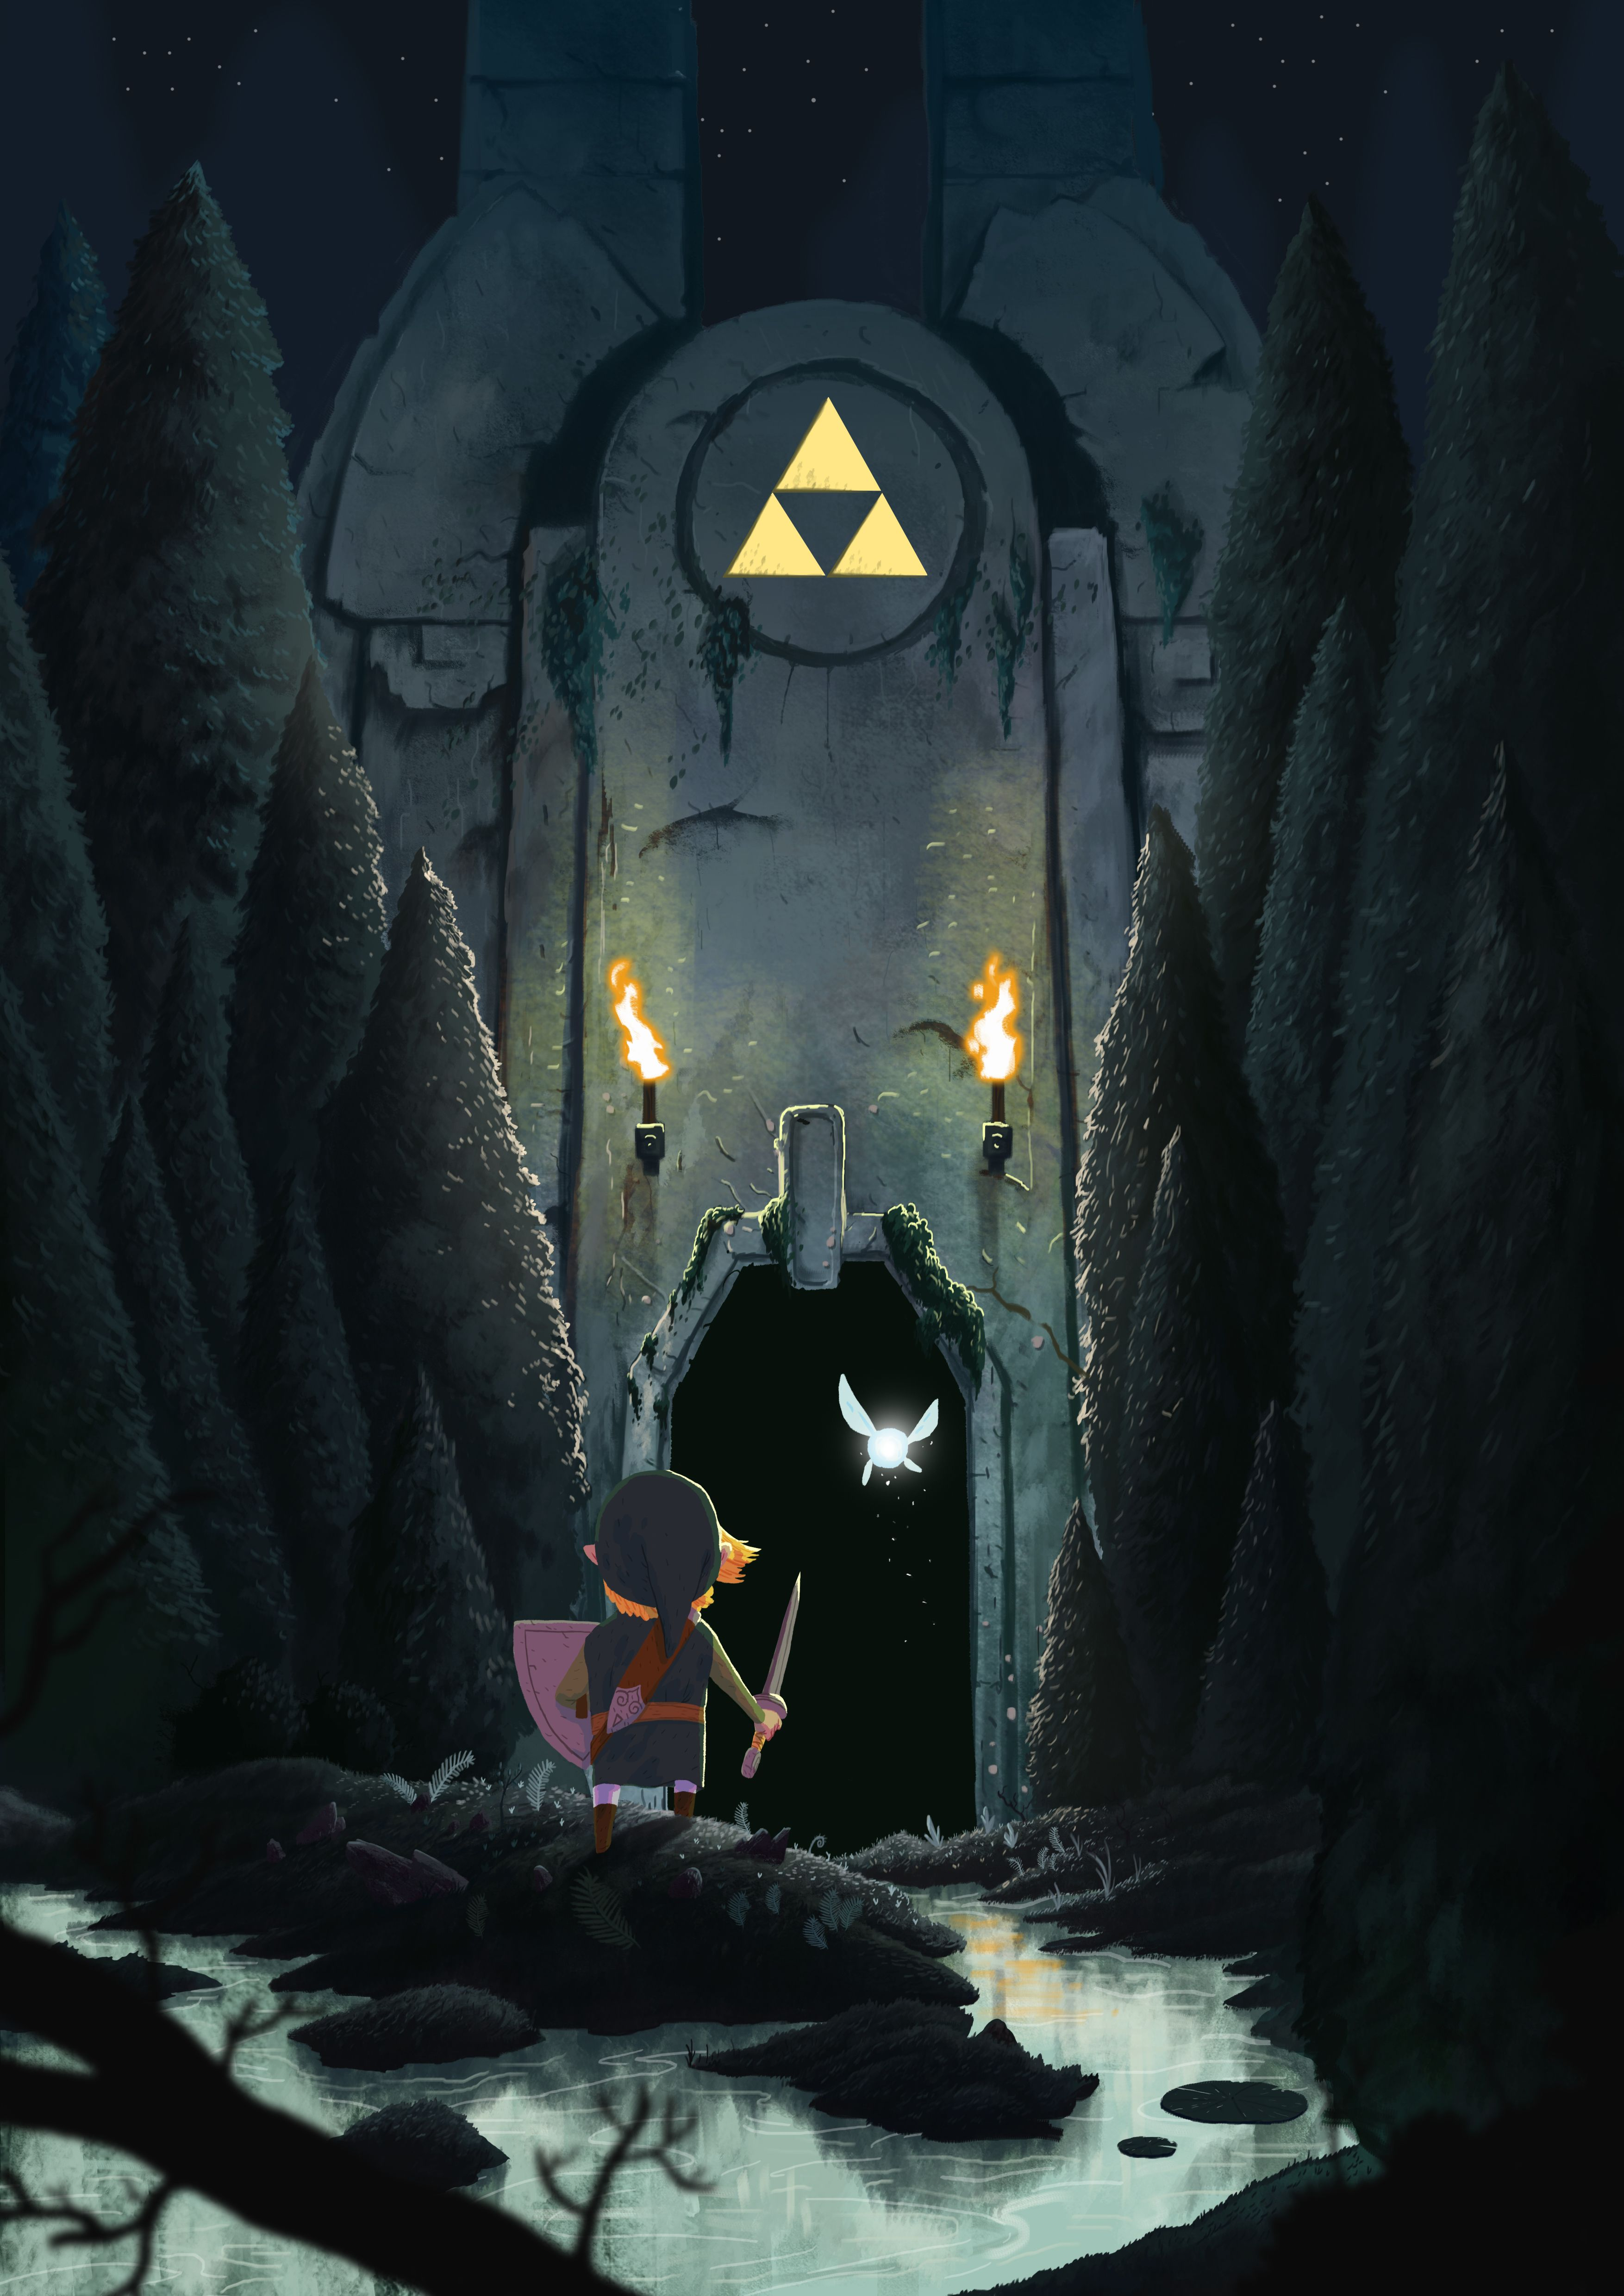 Pin By Kingsy On Fan Art And Other Very Nice Things Zelda Art